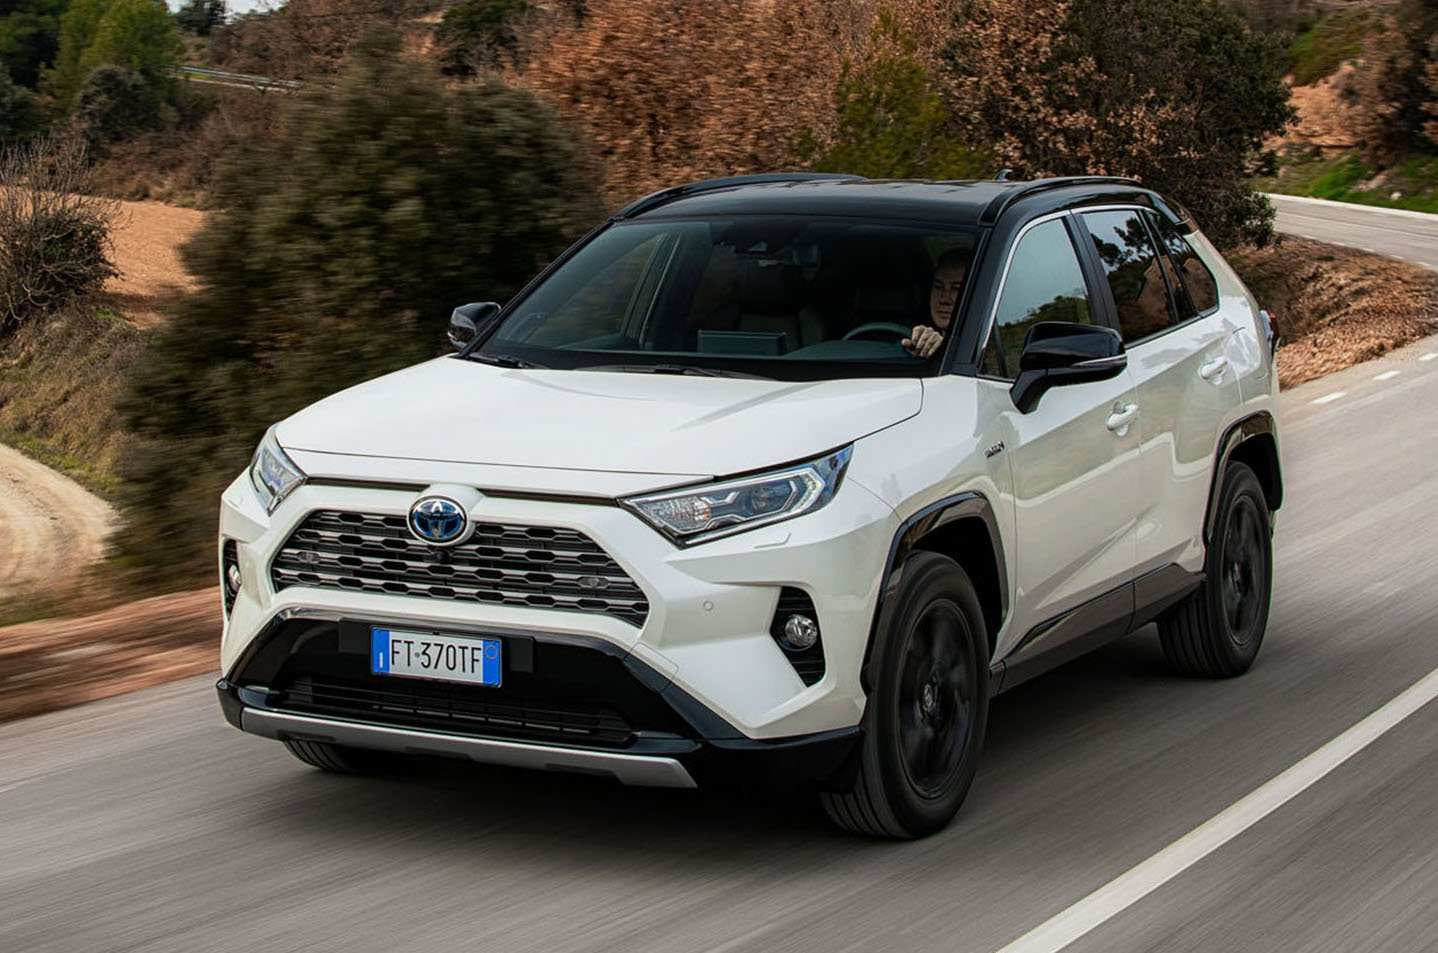 21 The 2019 Toyota Rav4 Specs Picture Release Date And Review Performance with 2019 Toyota Rav4 Specs Picture Release Date And Review